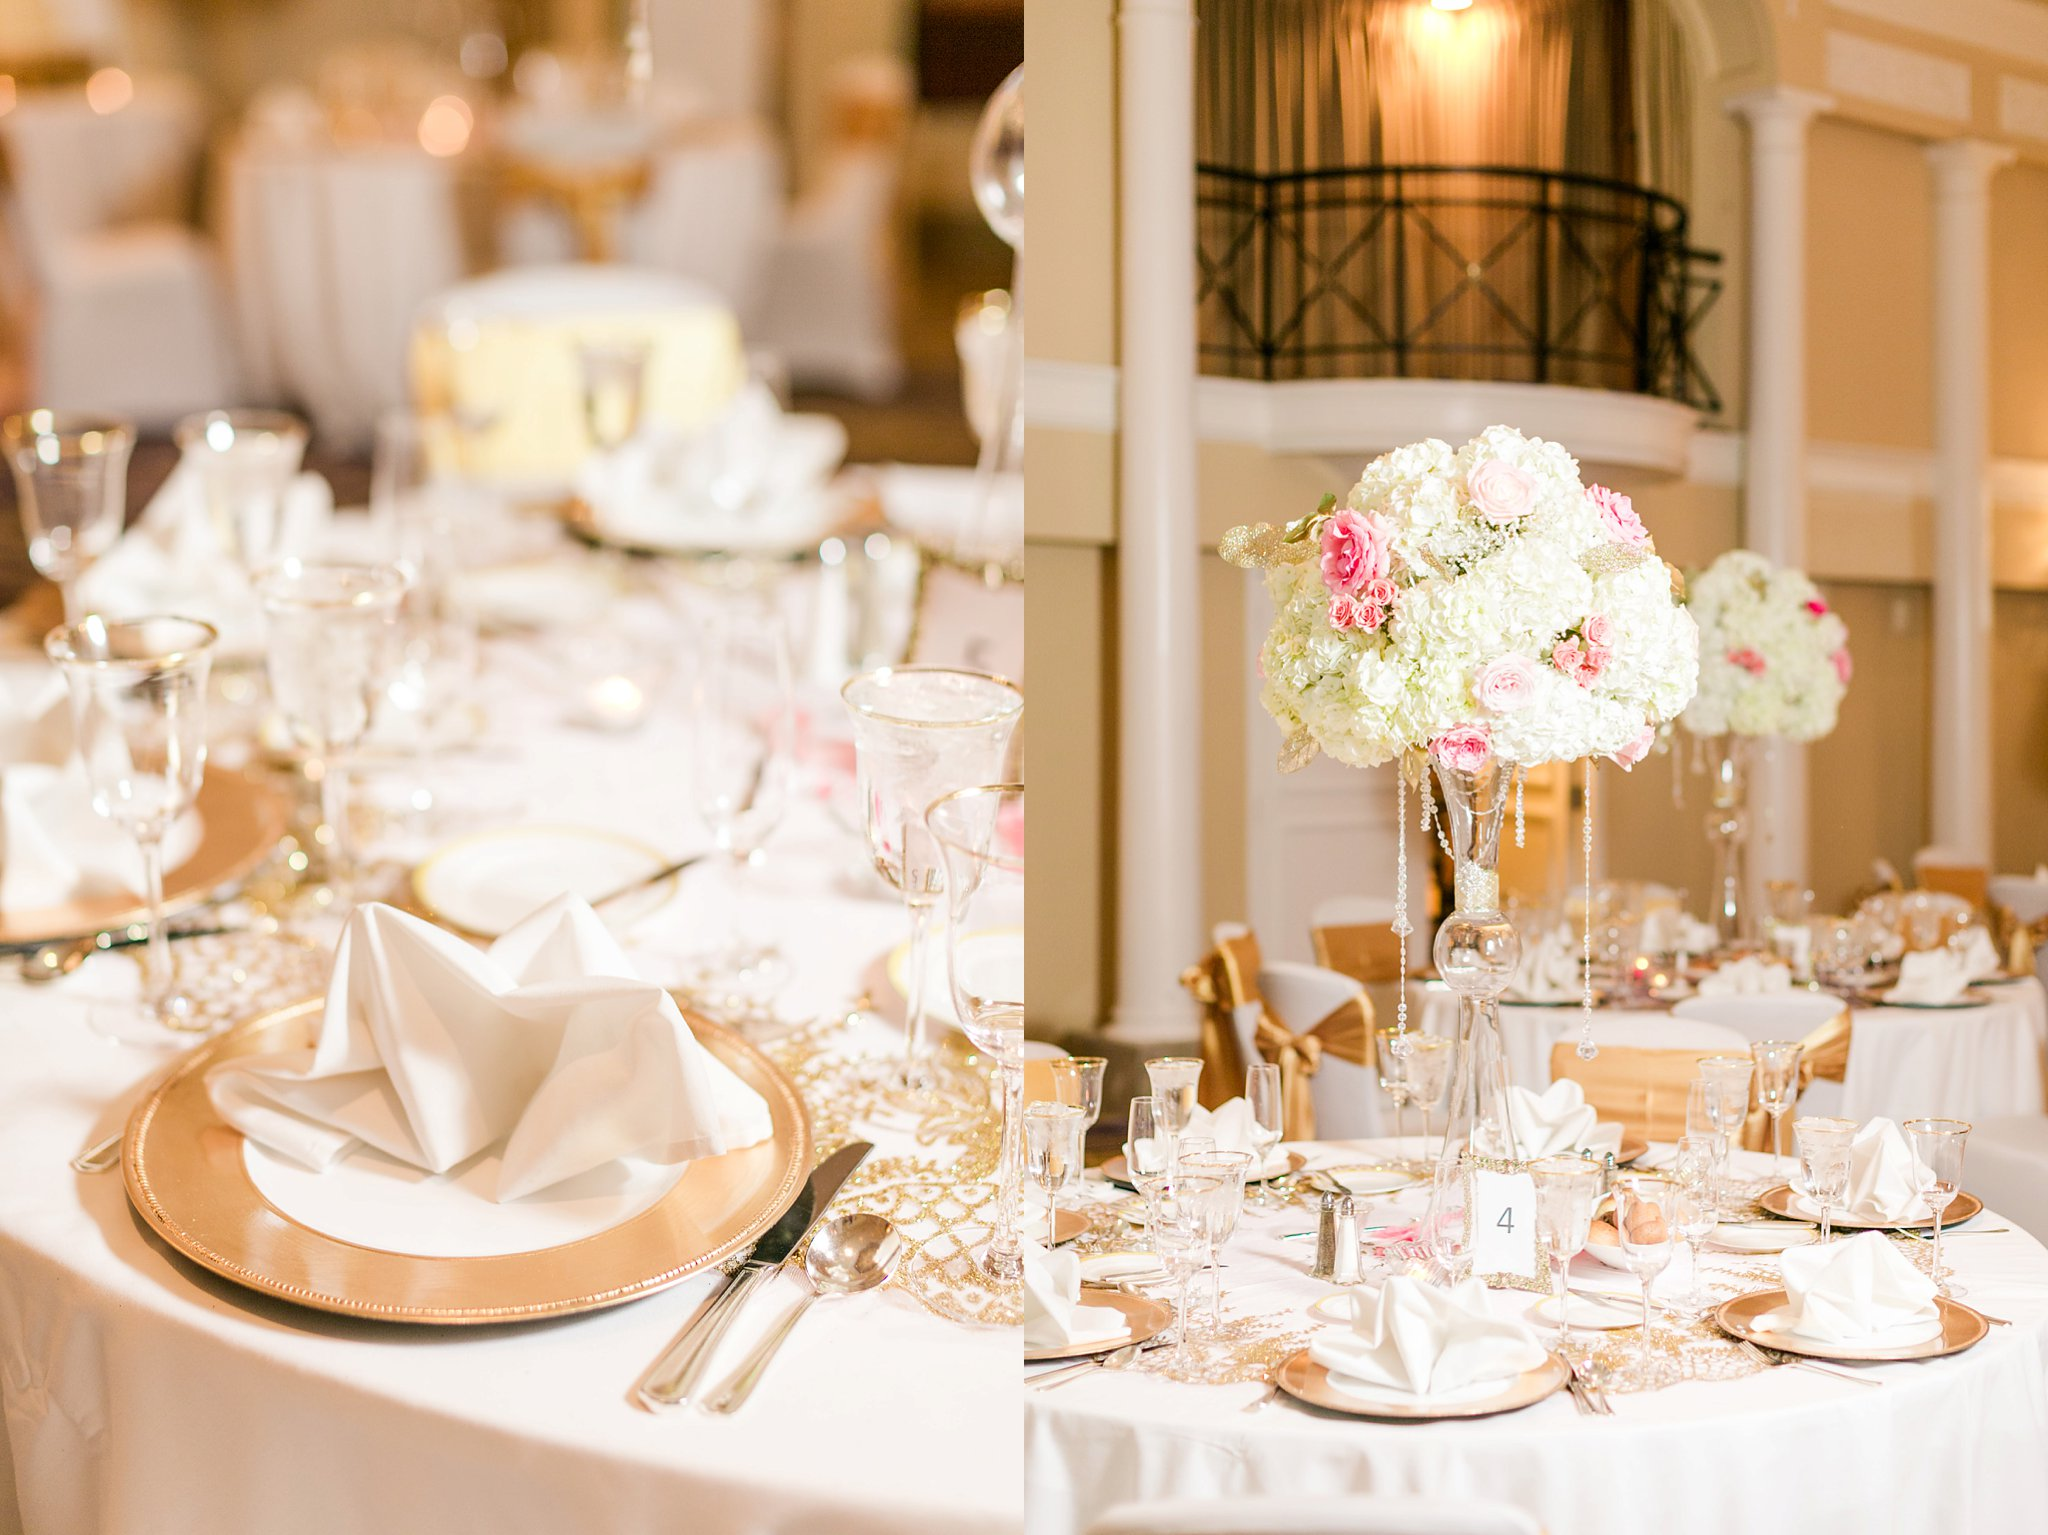 Mayflower Hotel Wedding Photos DC Pink & Gold Winter Wedding Tori & Tyler-397_photo.jpg